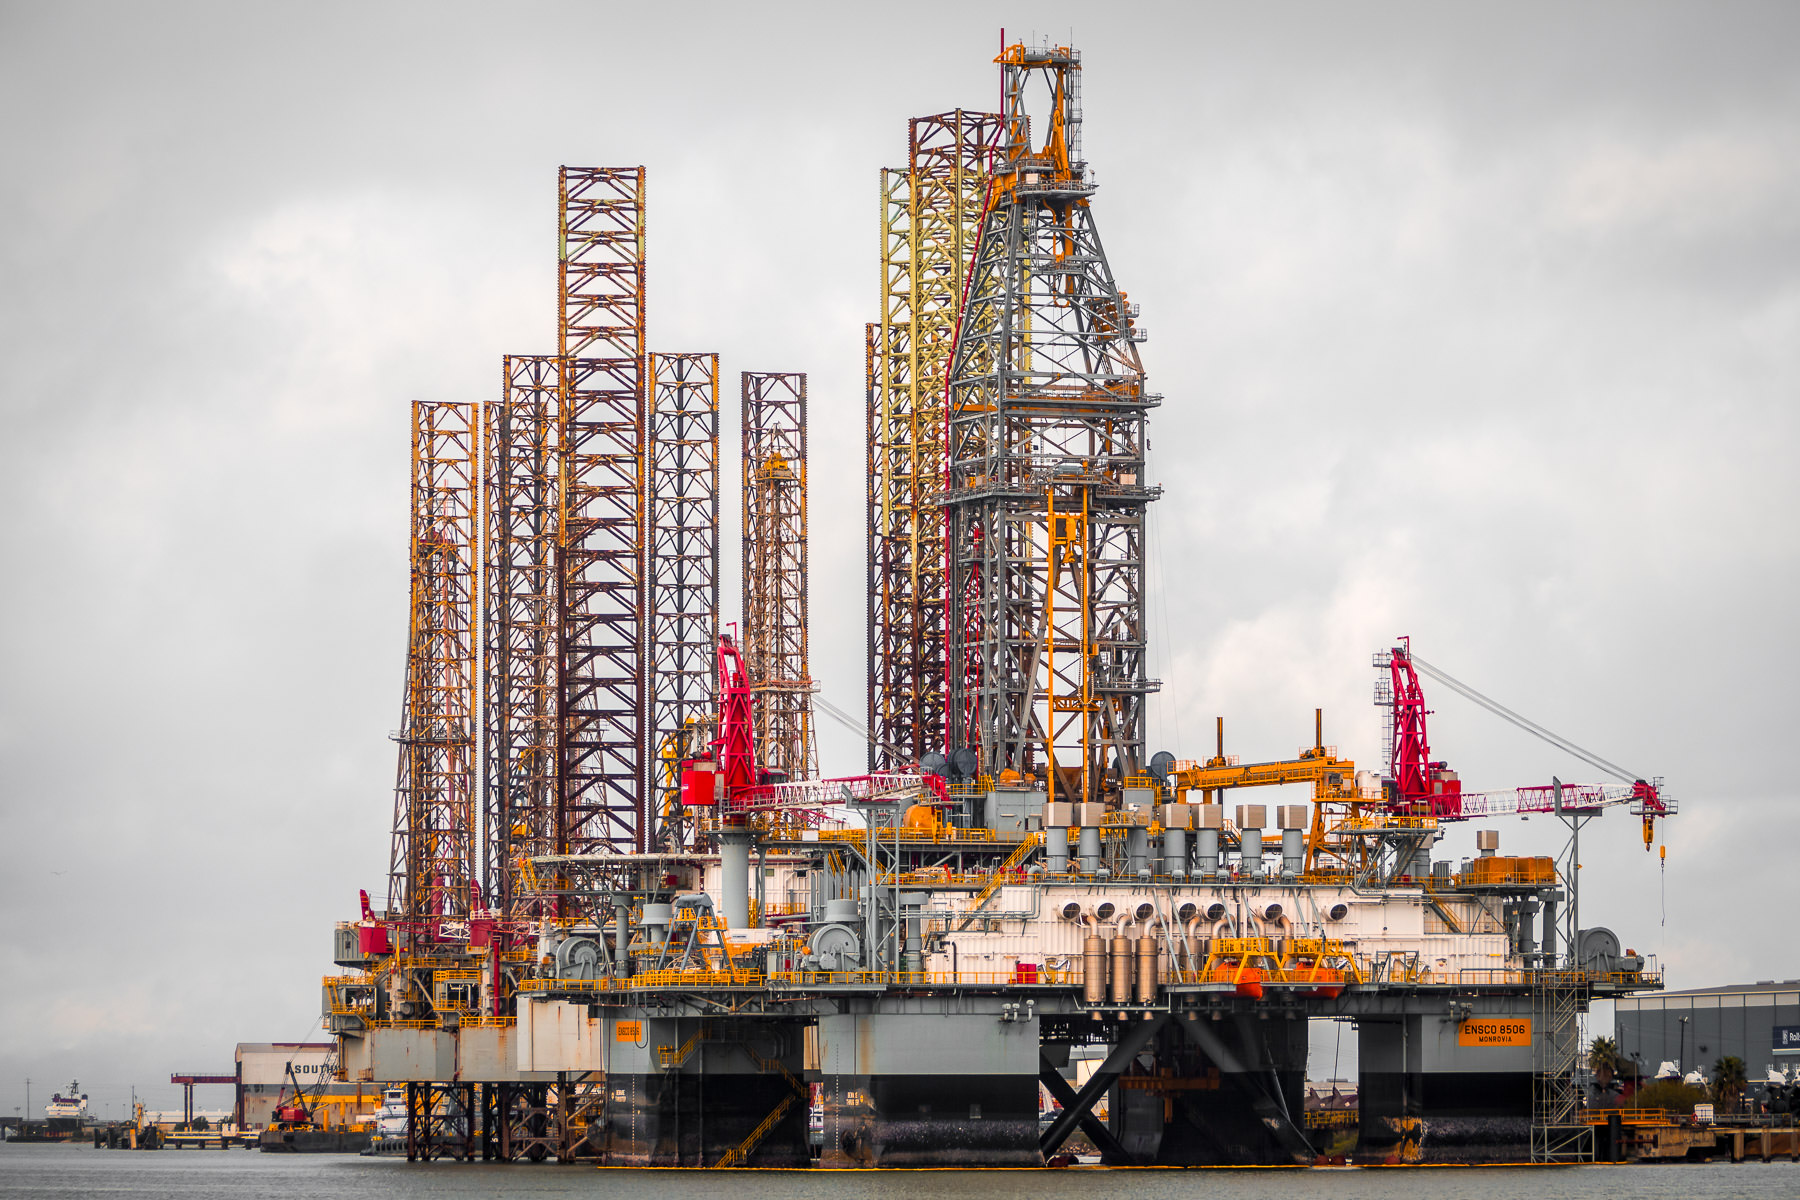 Offshore oil platforms, docked a Pelican Island, Galveston, Texas, on a cold, overcast winter day.